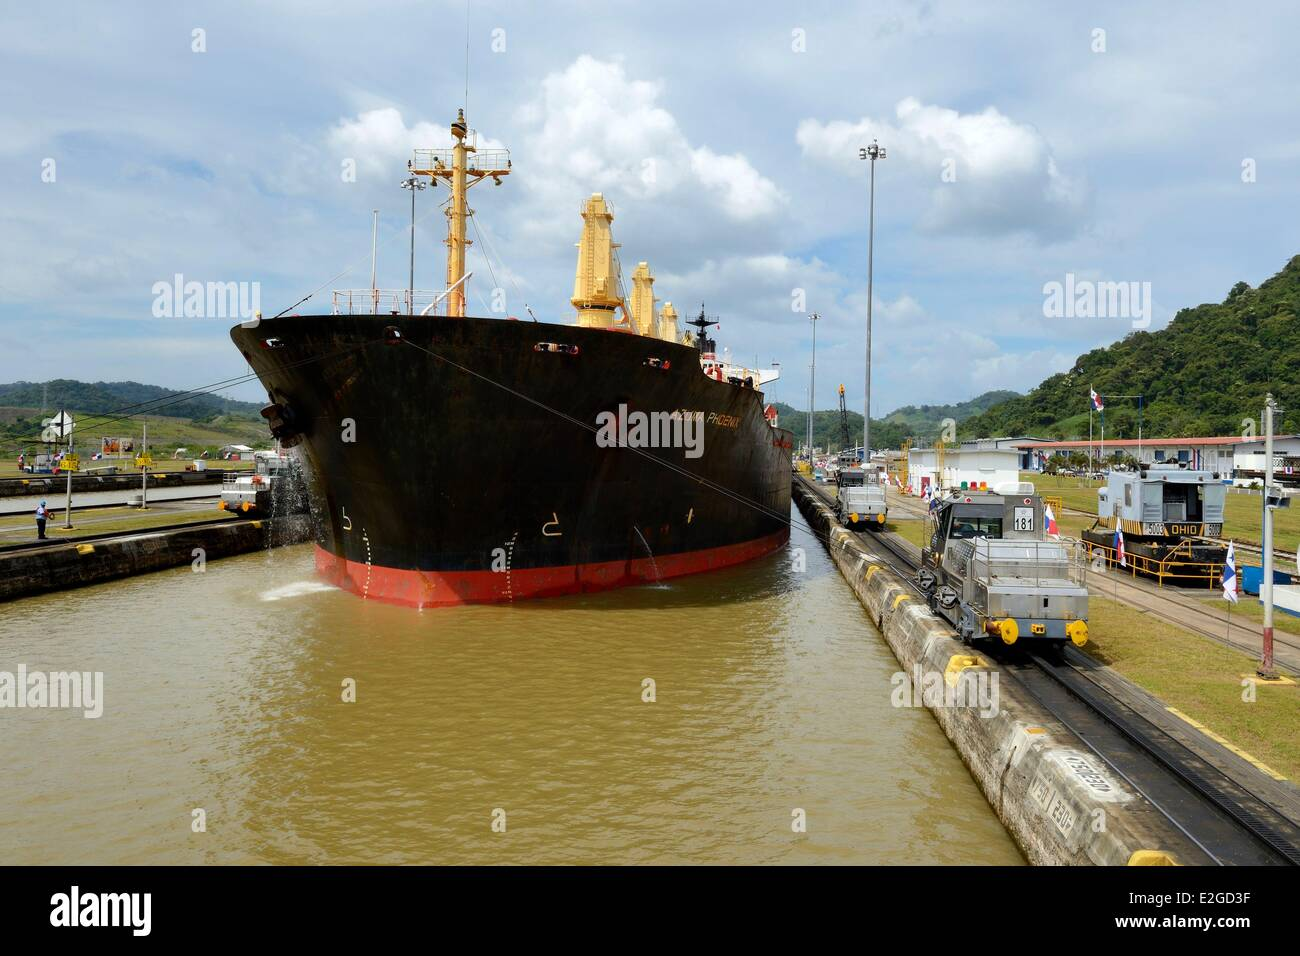 Panama Panama Canal Pedro Miguel locks mechanical mules or electric locomotives guiding a Panamax cargo between - Stock Image